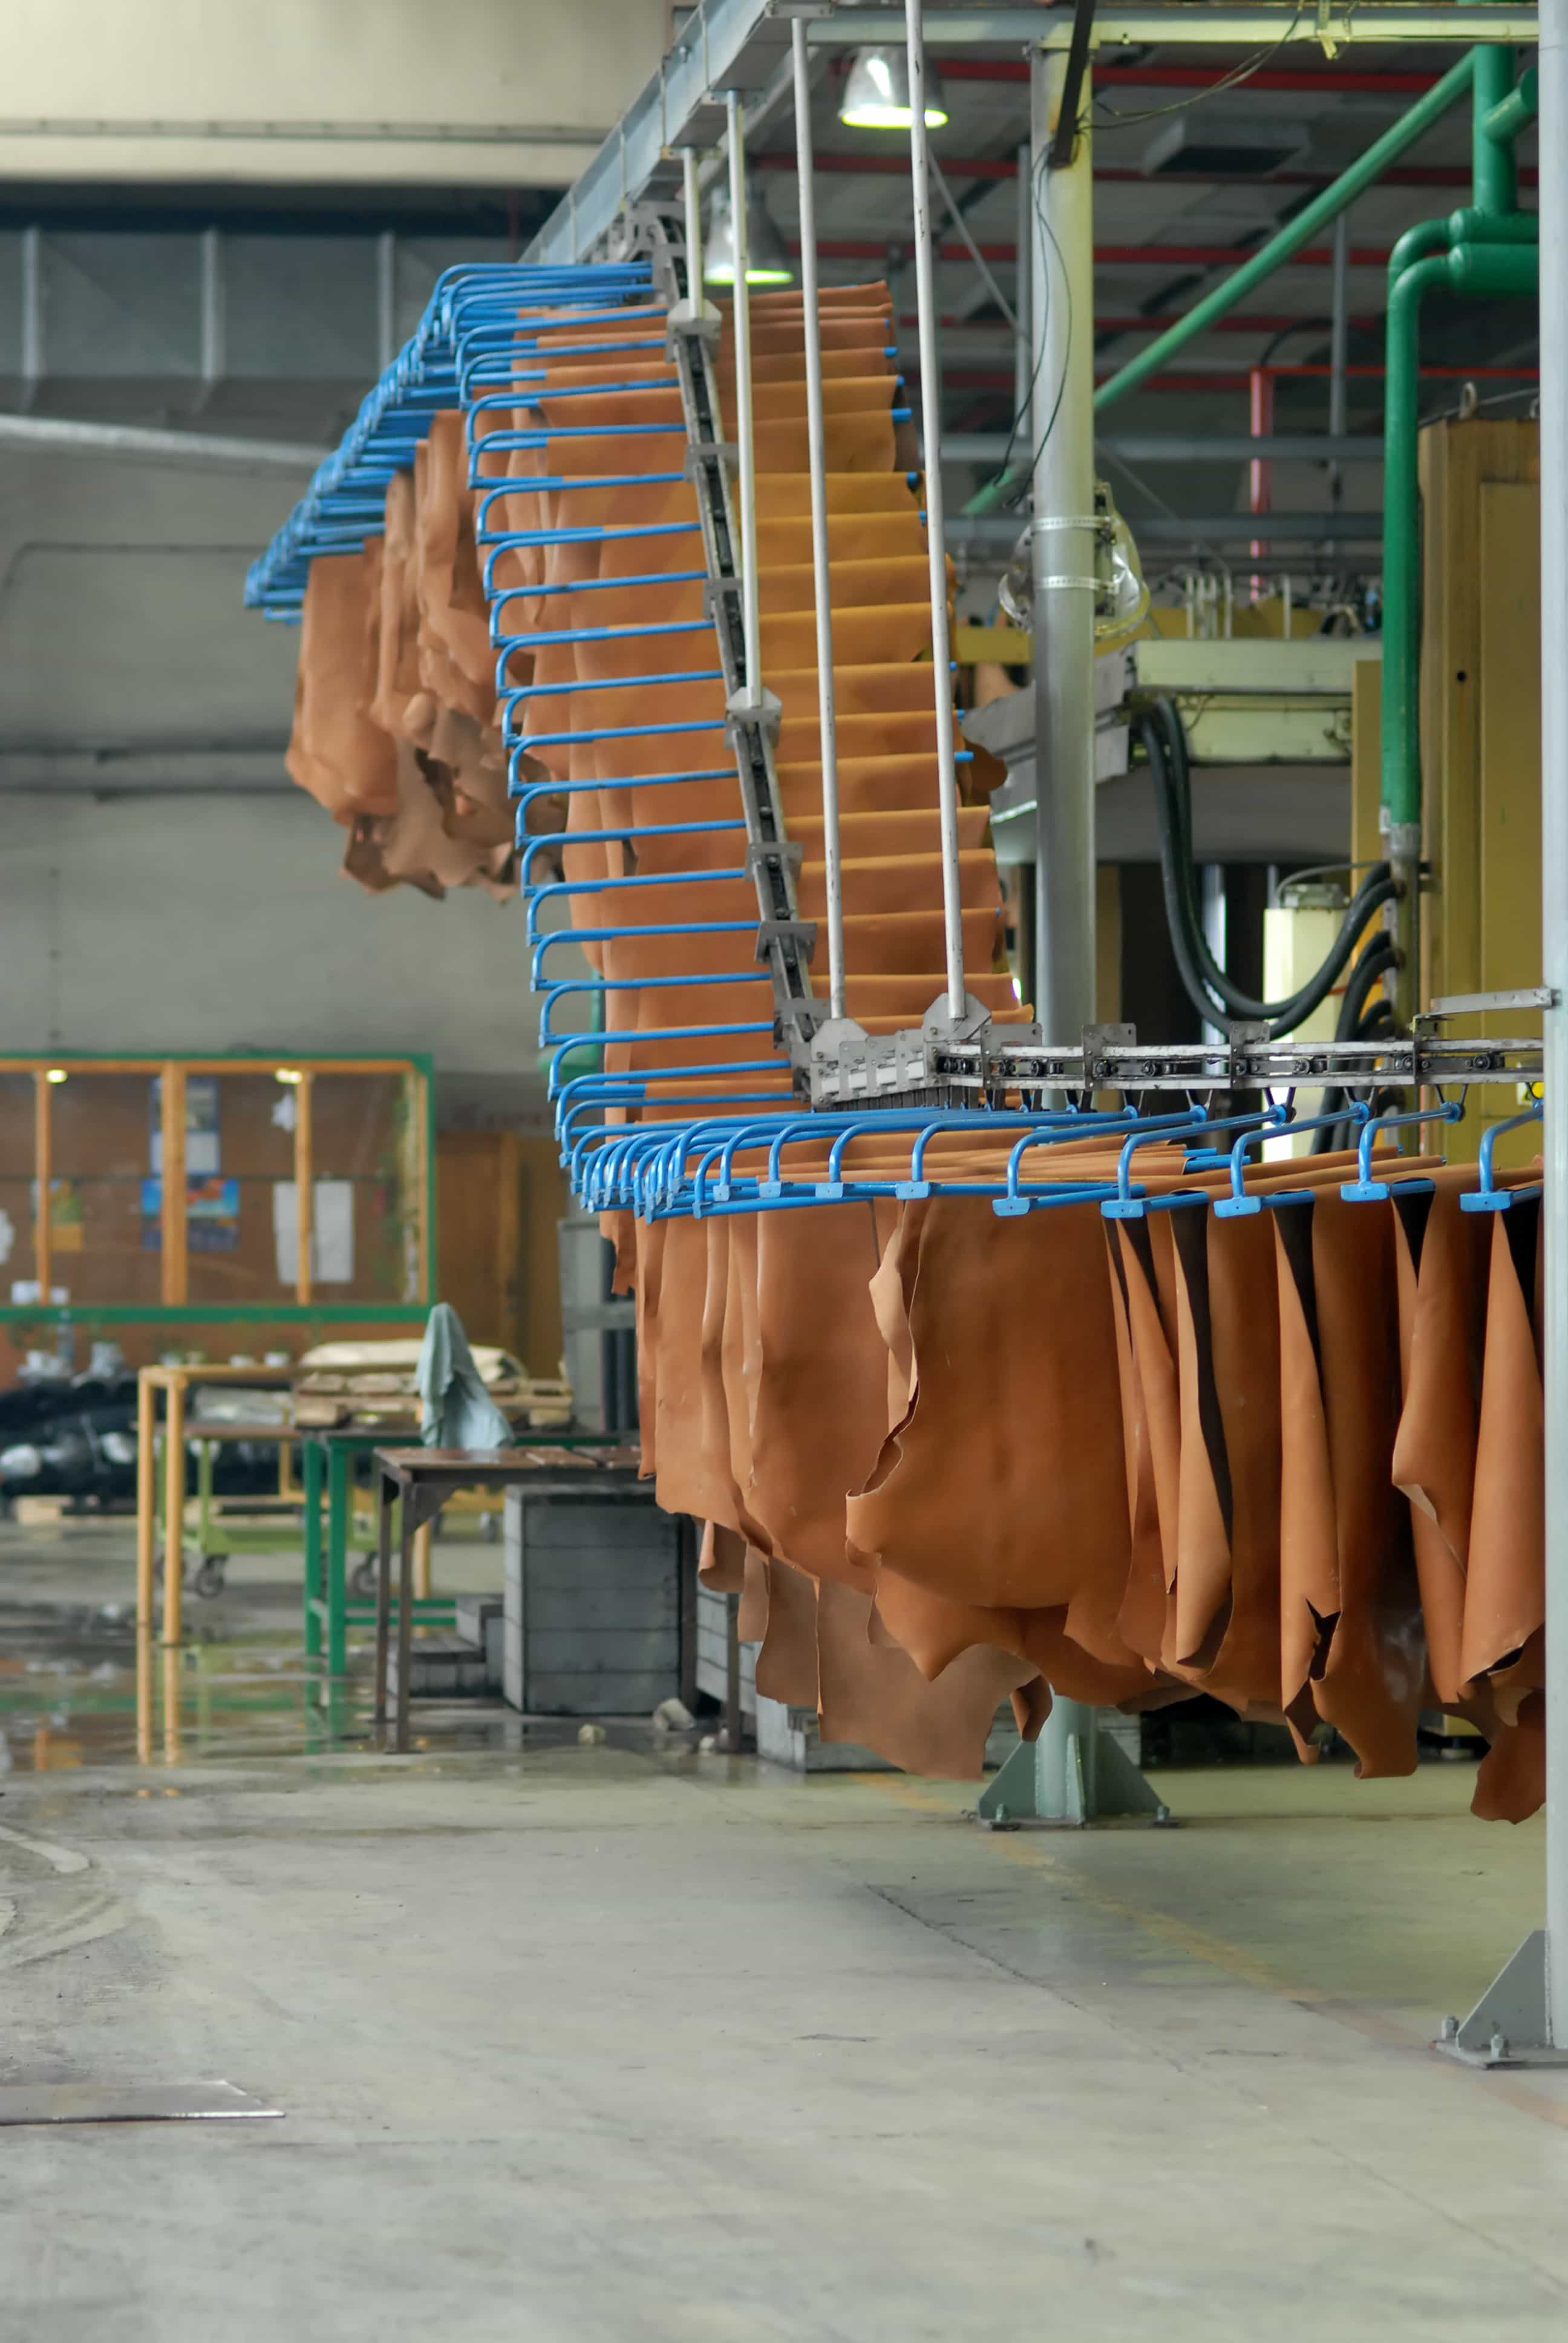 Discover how a real Automotive tannery works